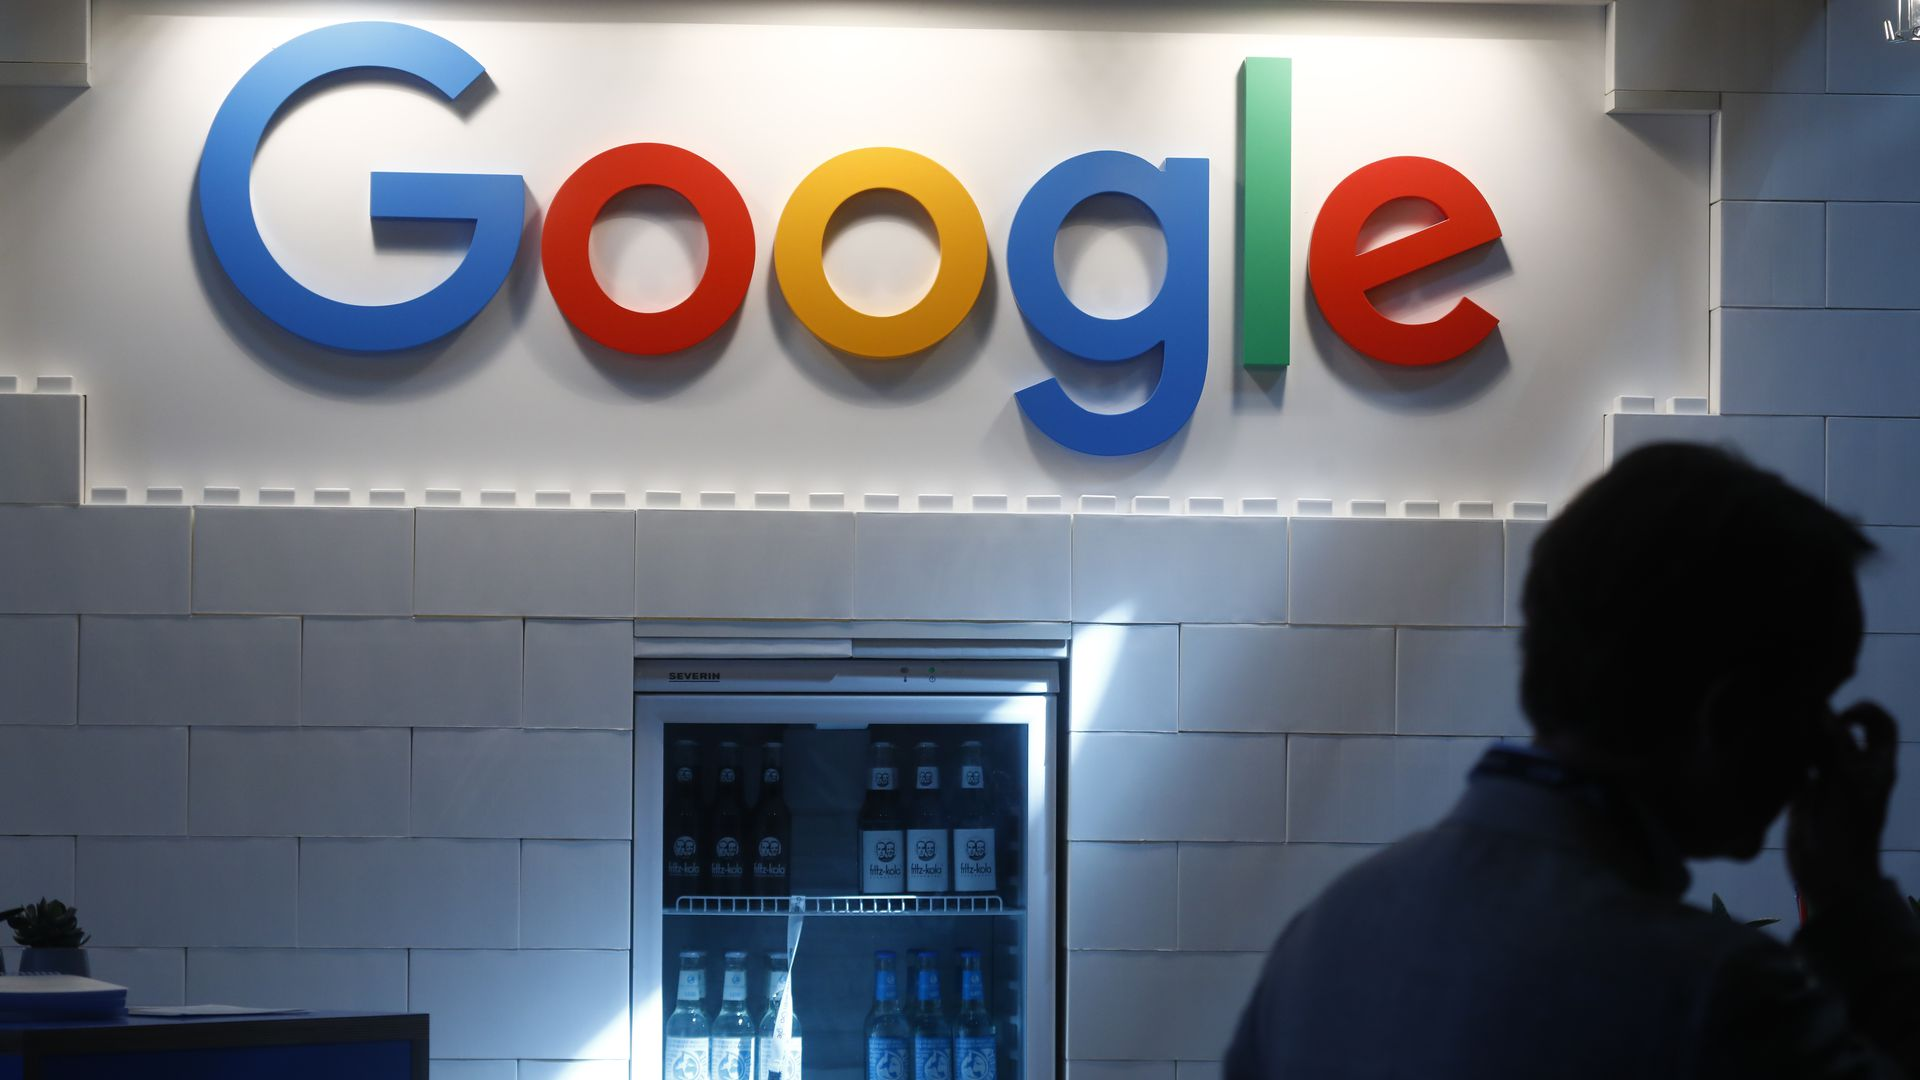 Google sign against a cinderblock wall over a refrigerator